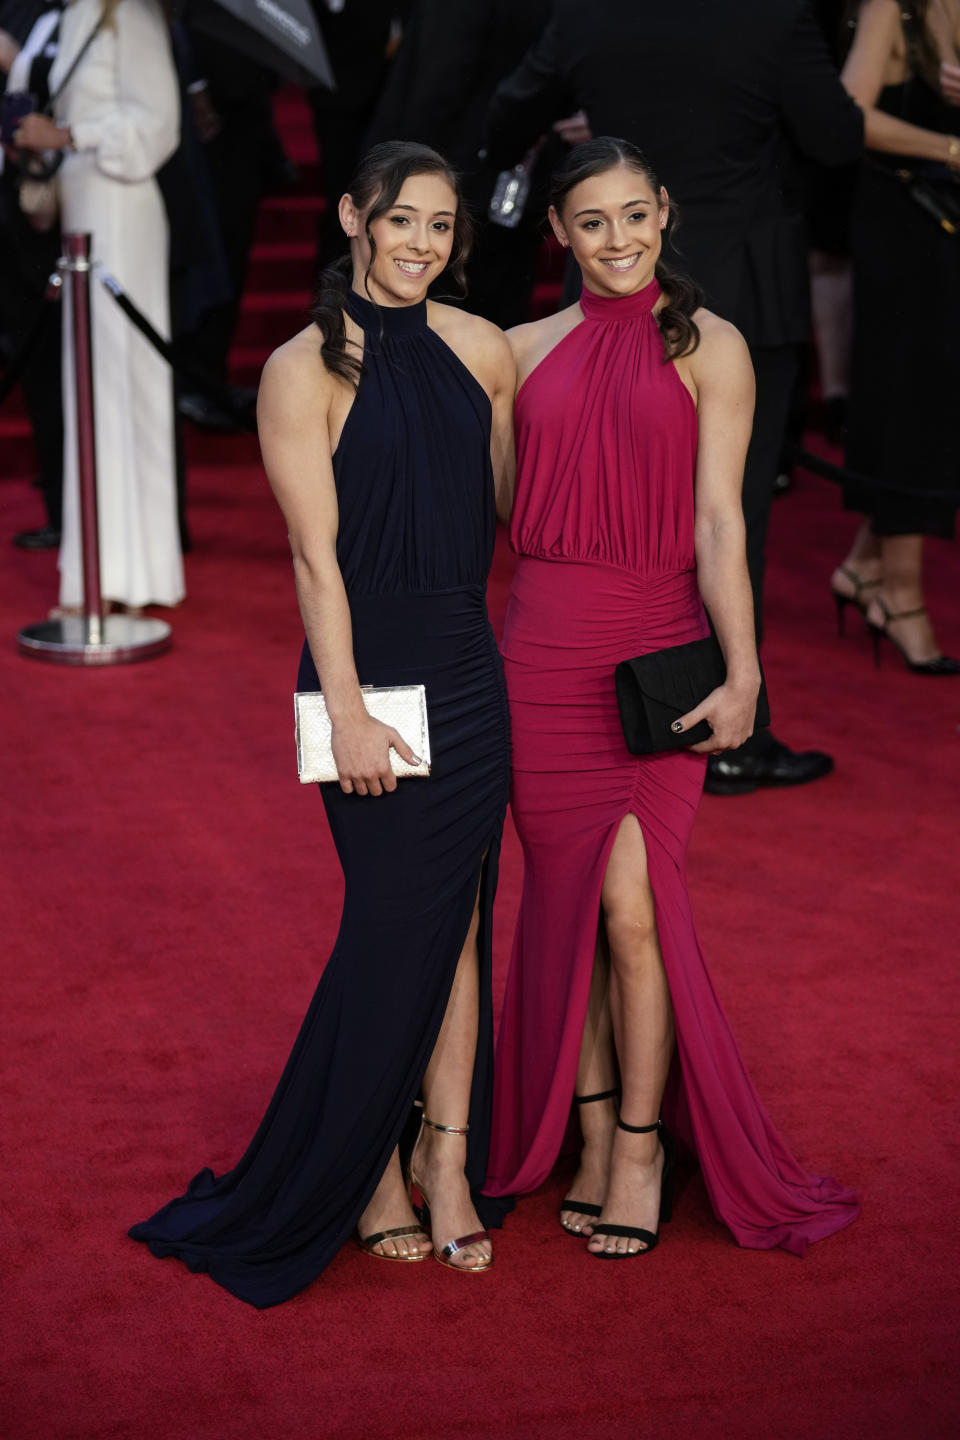 Jennifer Gadirova and Jessica Gadirova pose for photographers upon arrival for the World premiere of the new film from the James Bond franchise 'No Time To Die', in London Tuesday, Sept. 28, 2021. (AP Photo/Matt Dunham)